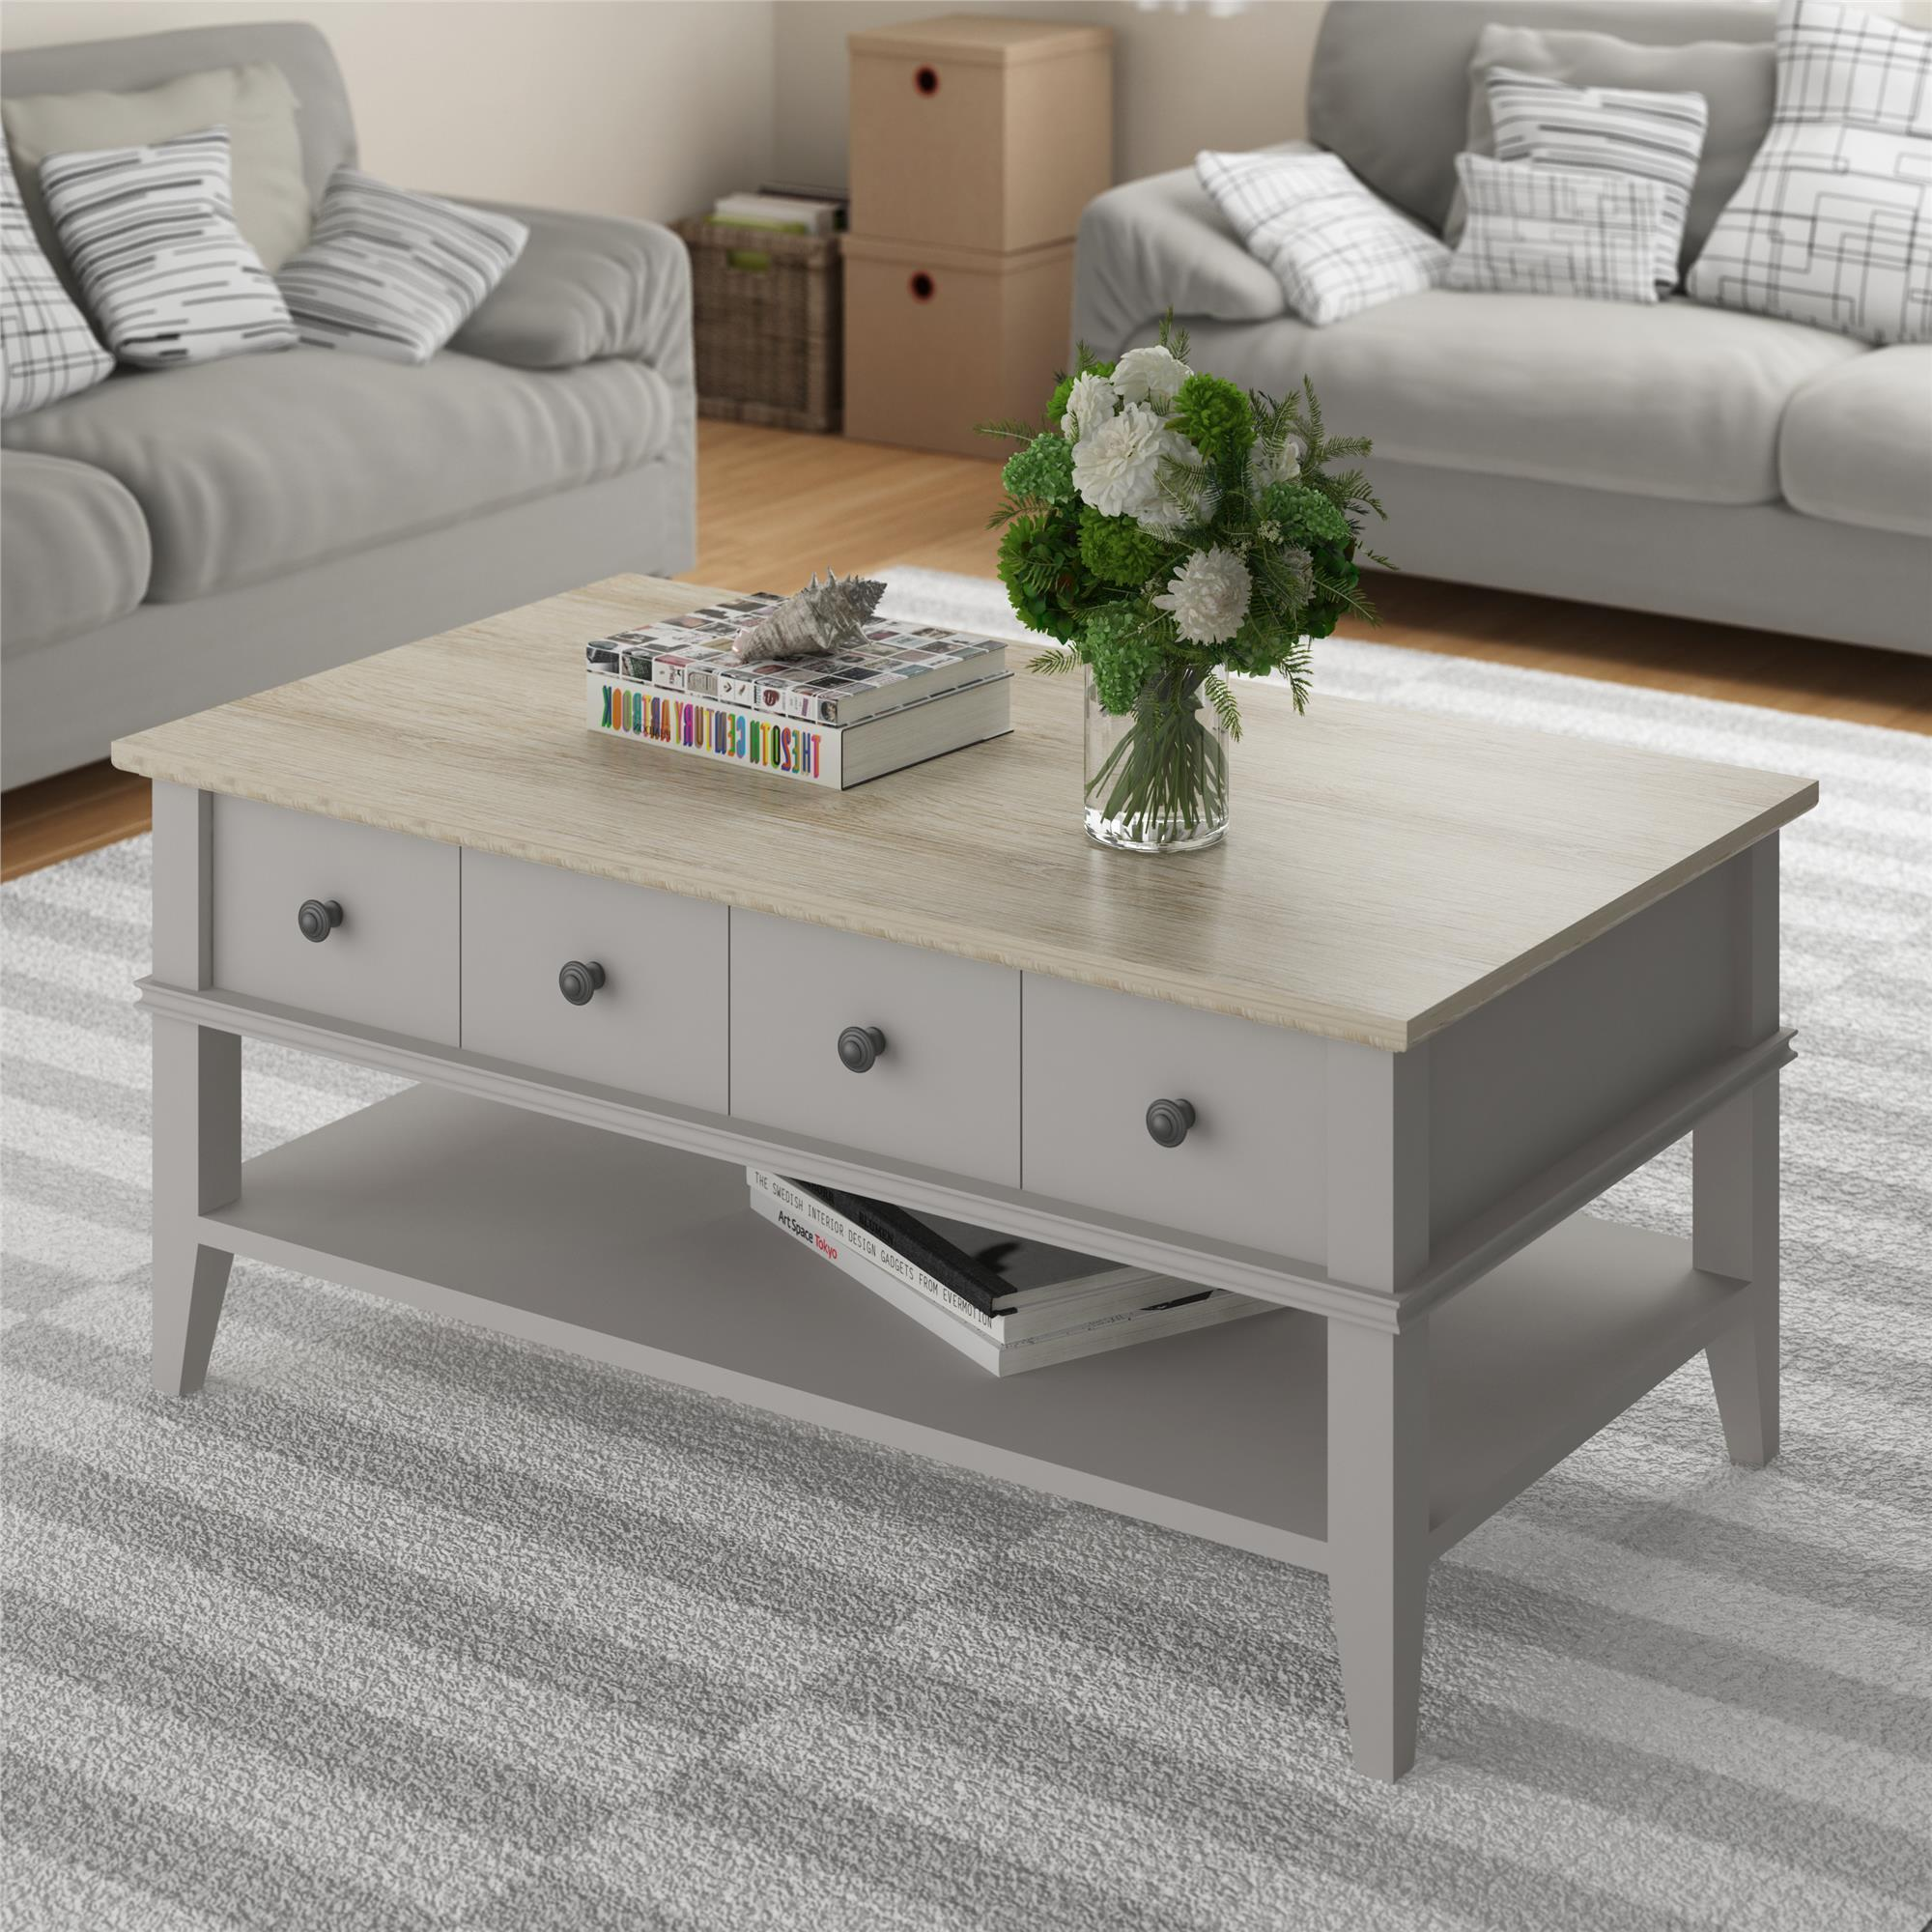 Shop Avenue Greene Turtle Creek Taupe/ Natural Coffee Table   On Sale    Free Shipping Today   Overstock.com   20186905